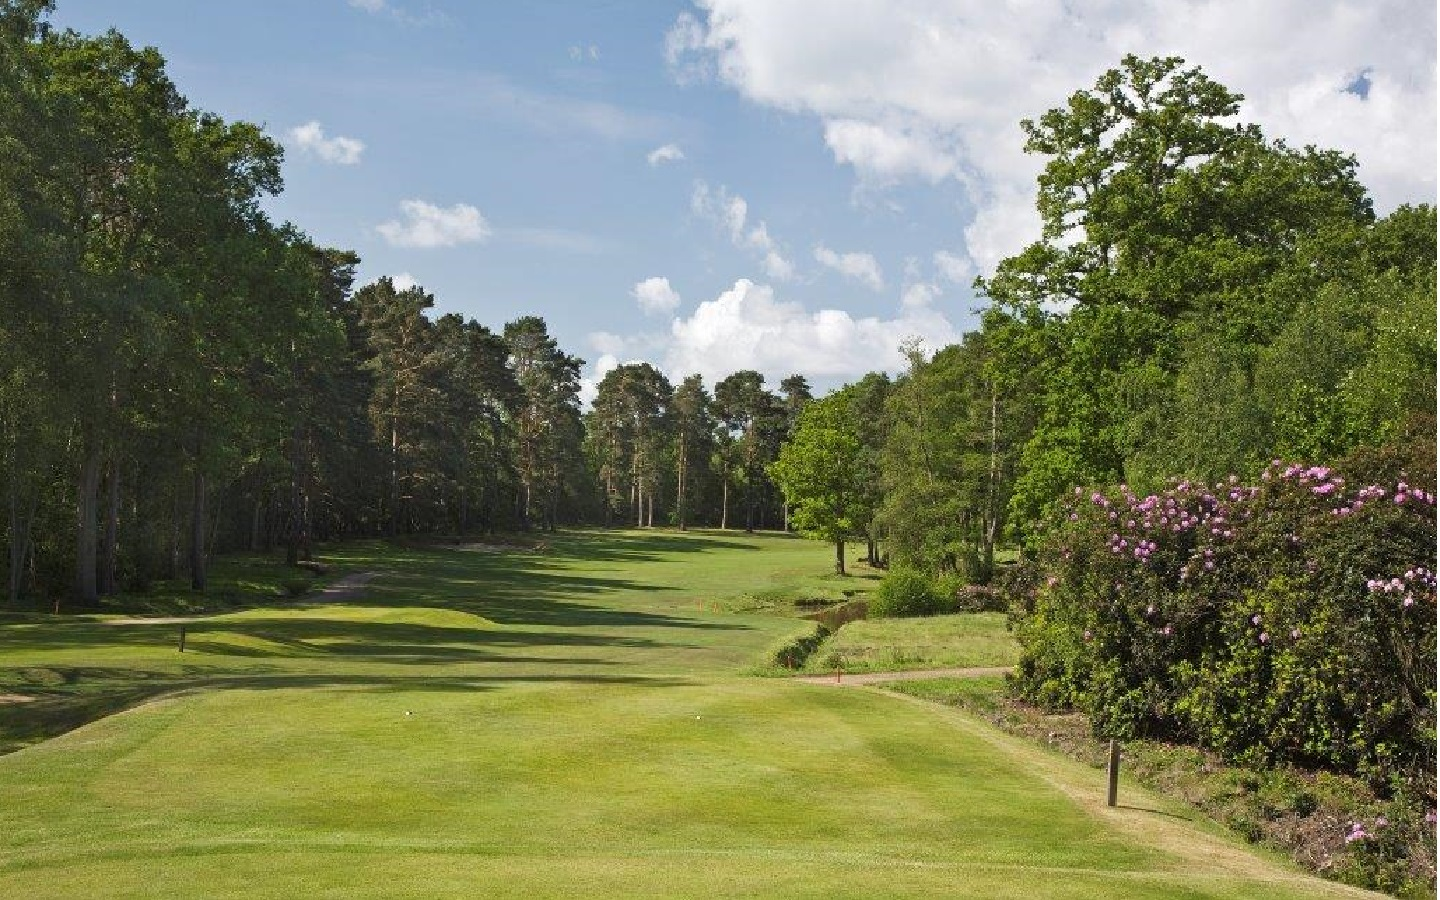 Worplesdon Golf Club - Captain's Day Venue